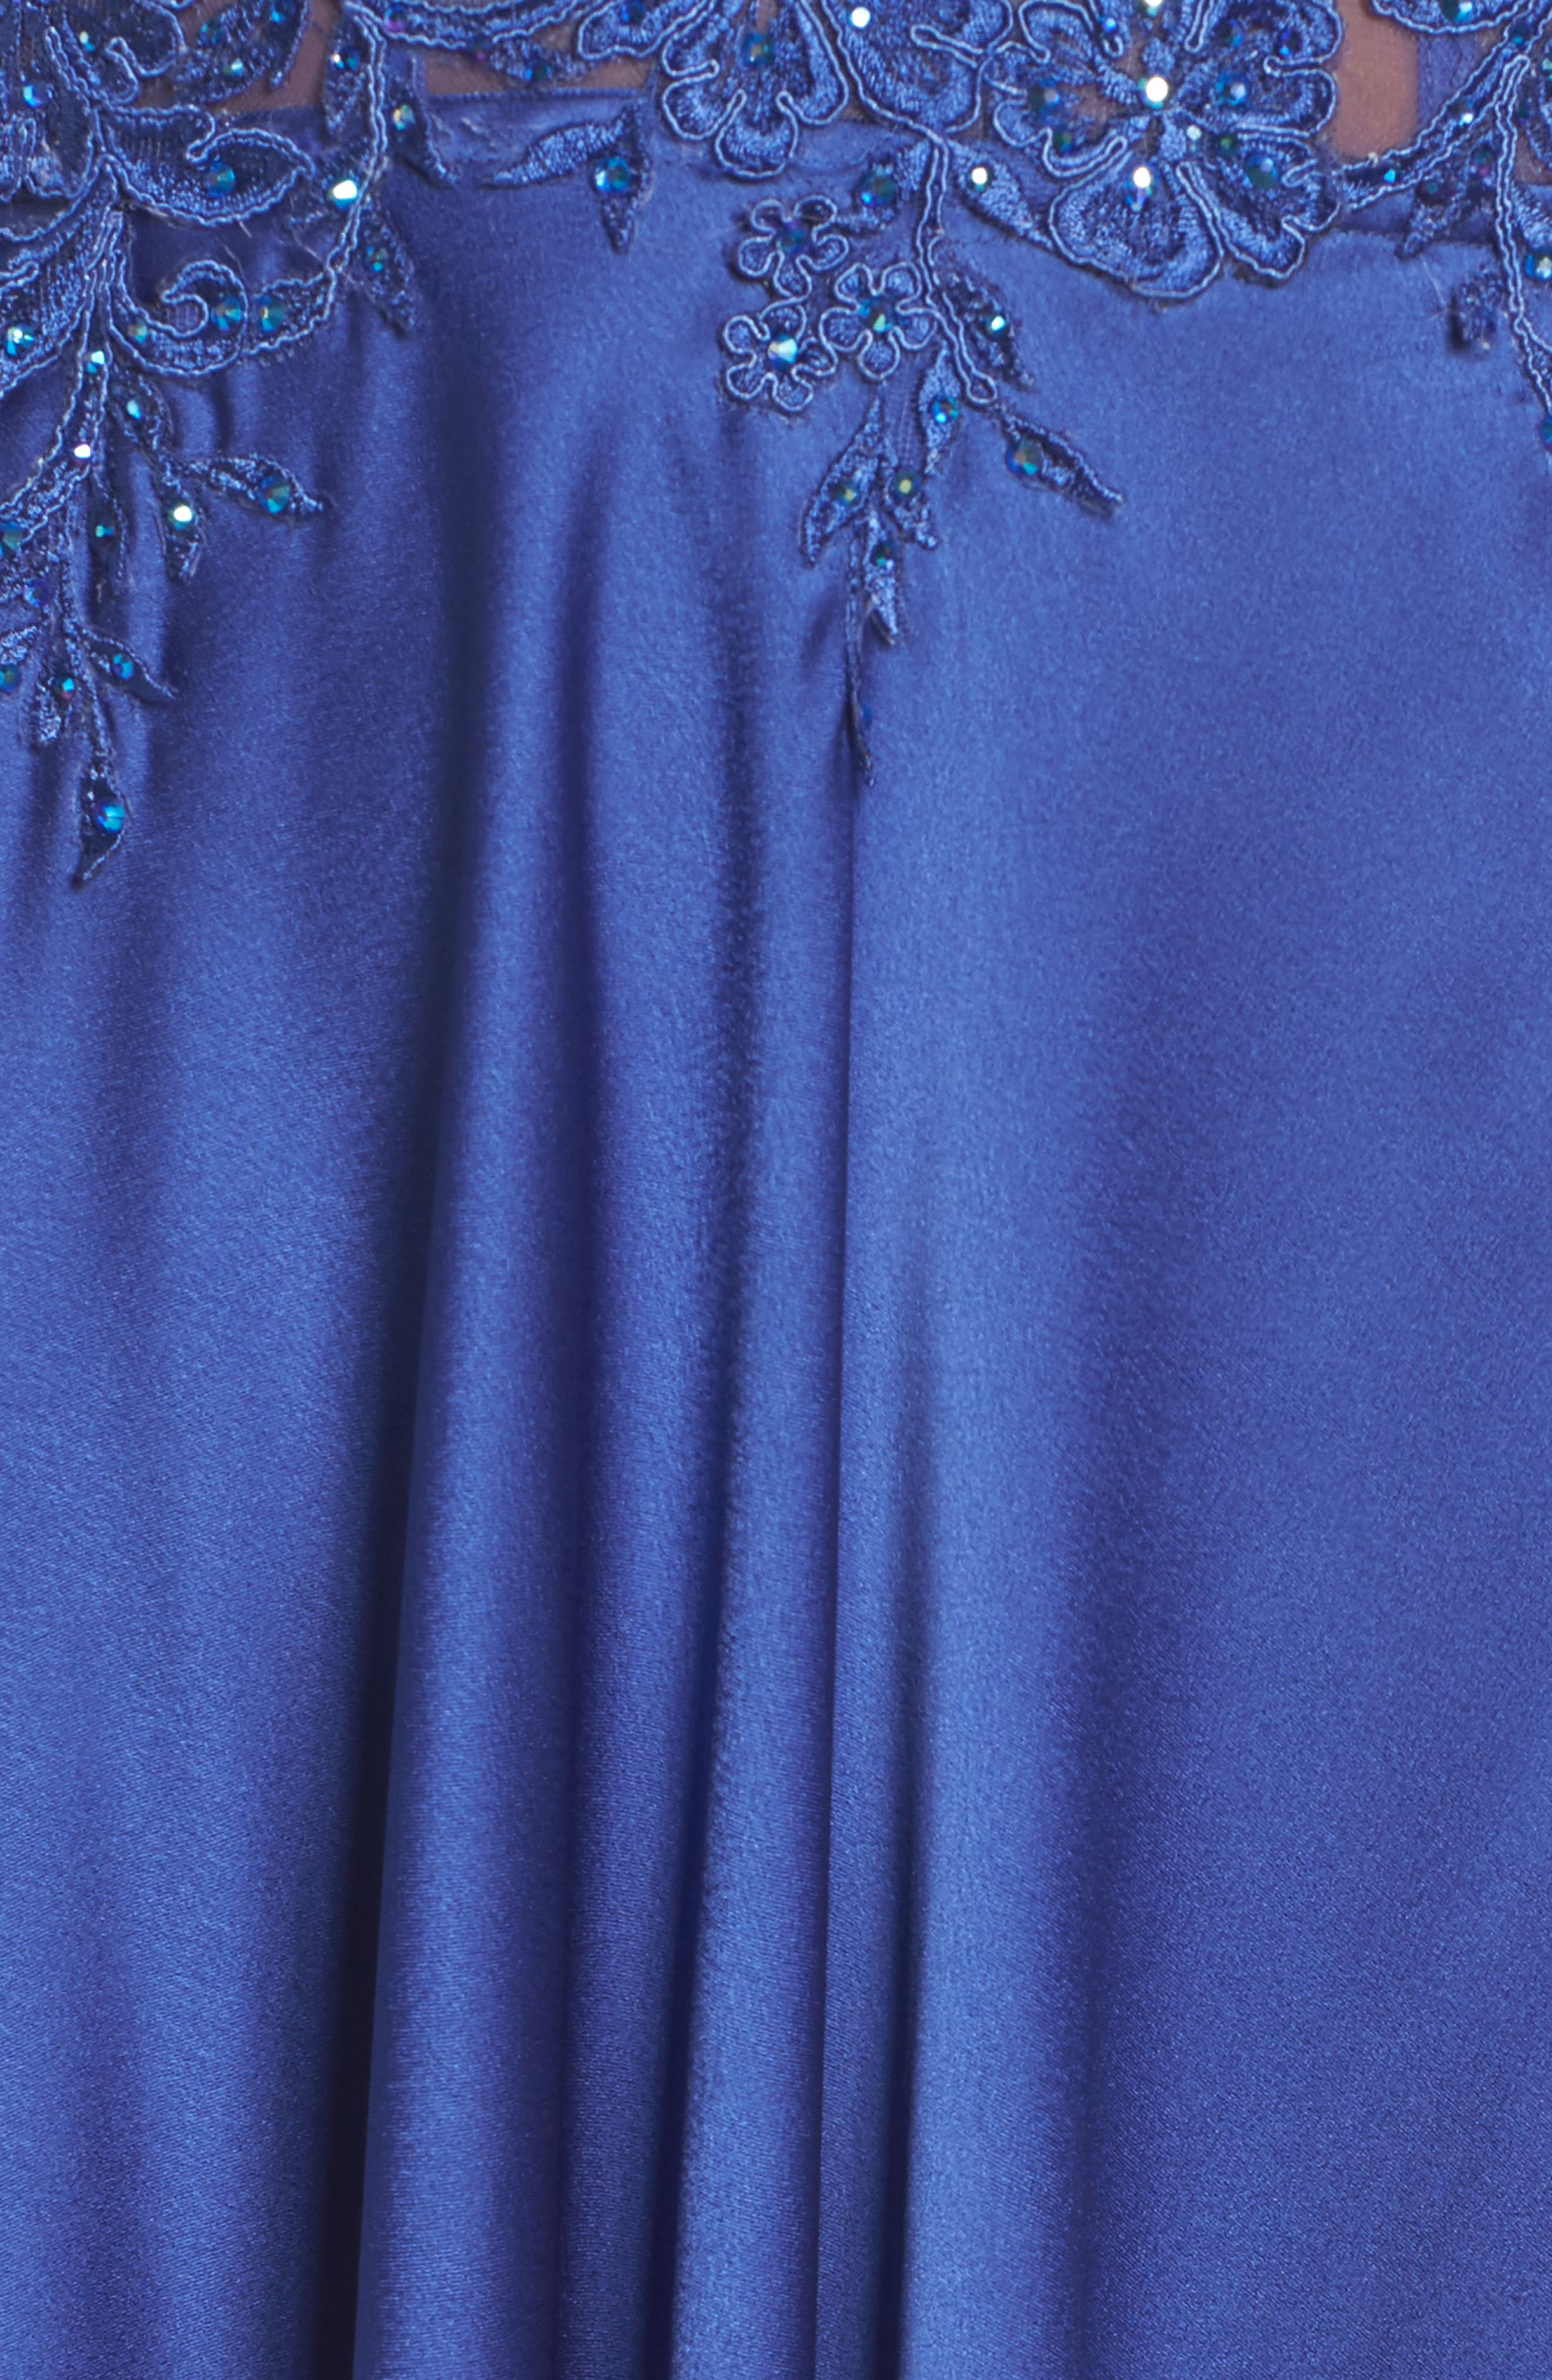 Embroidered Off the Shoulder Satin A-Line Gown,                             Alternate thumbnail 6, color,                             Dark Periwinkle